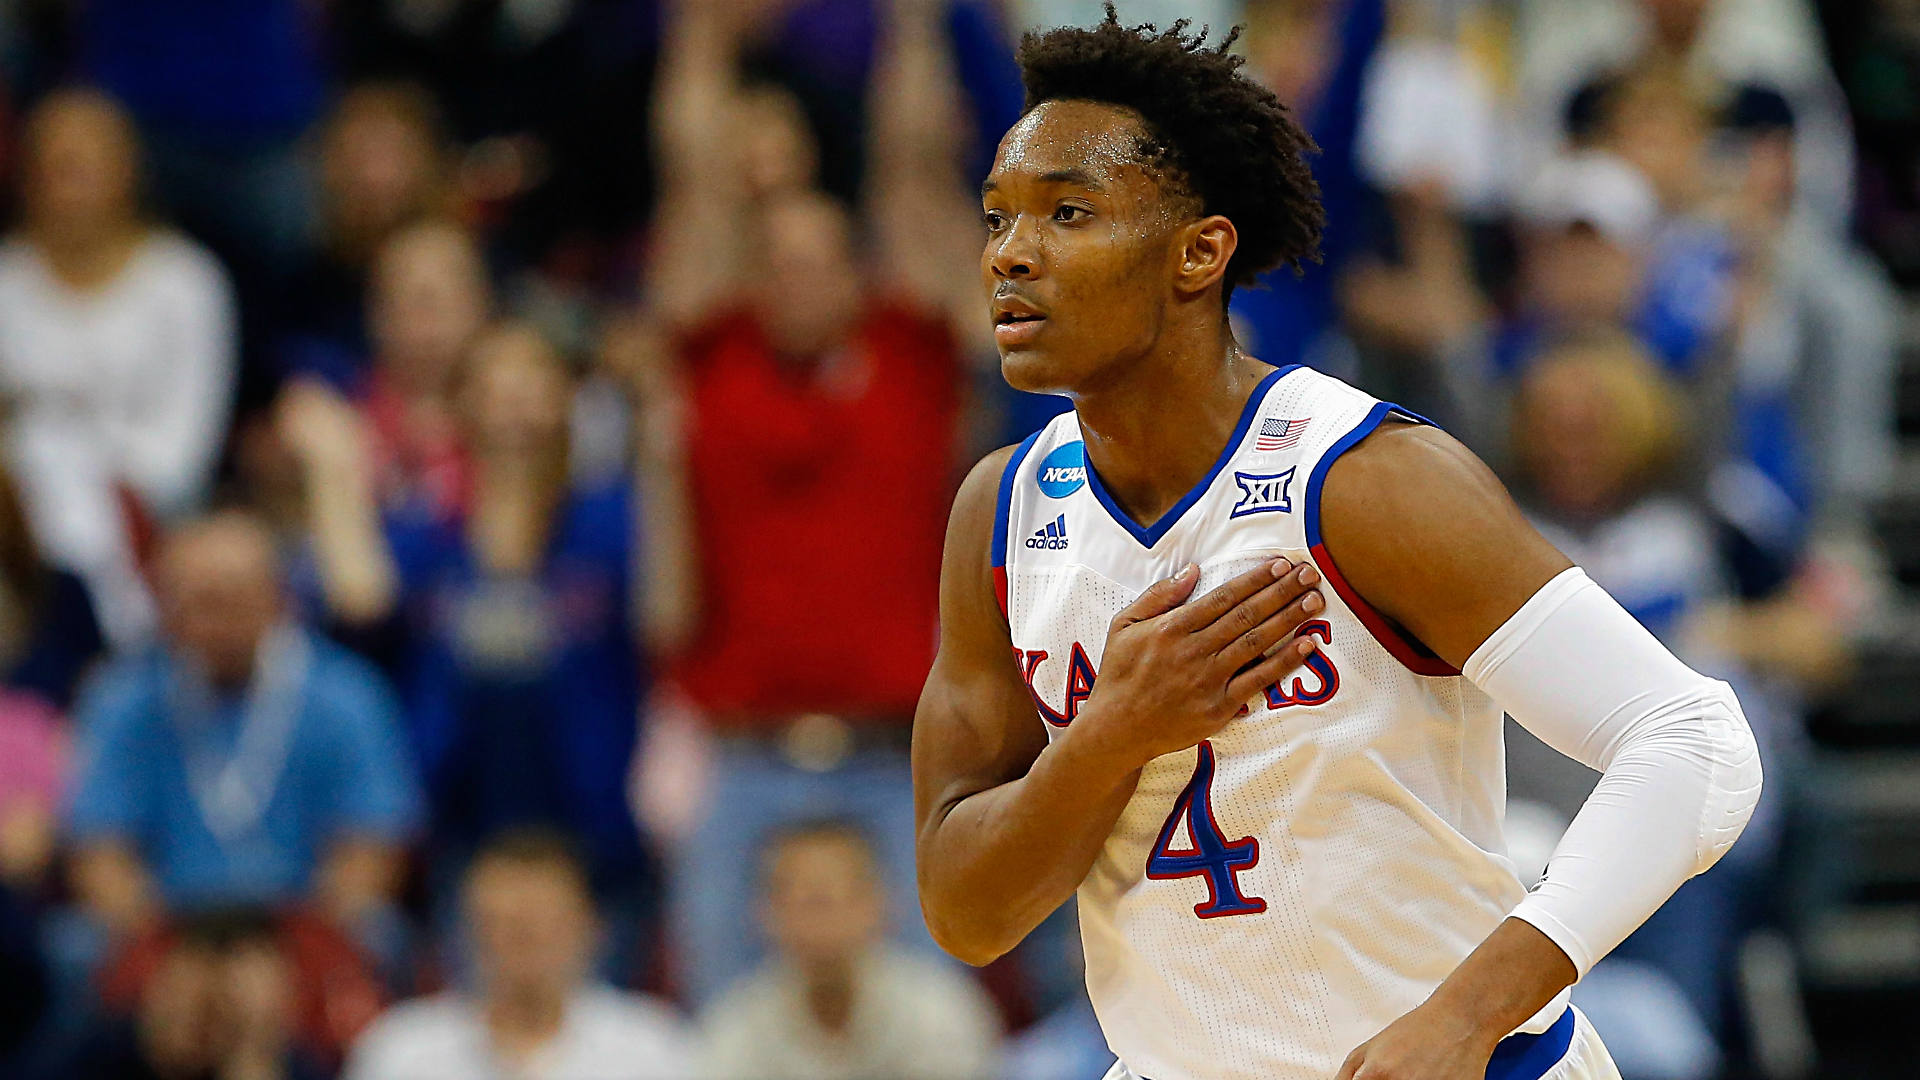 Late foul call on Kansas' Devonte' Graham was a curious ...